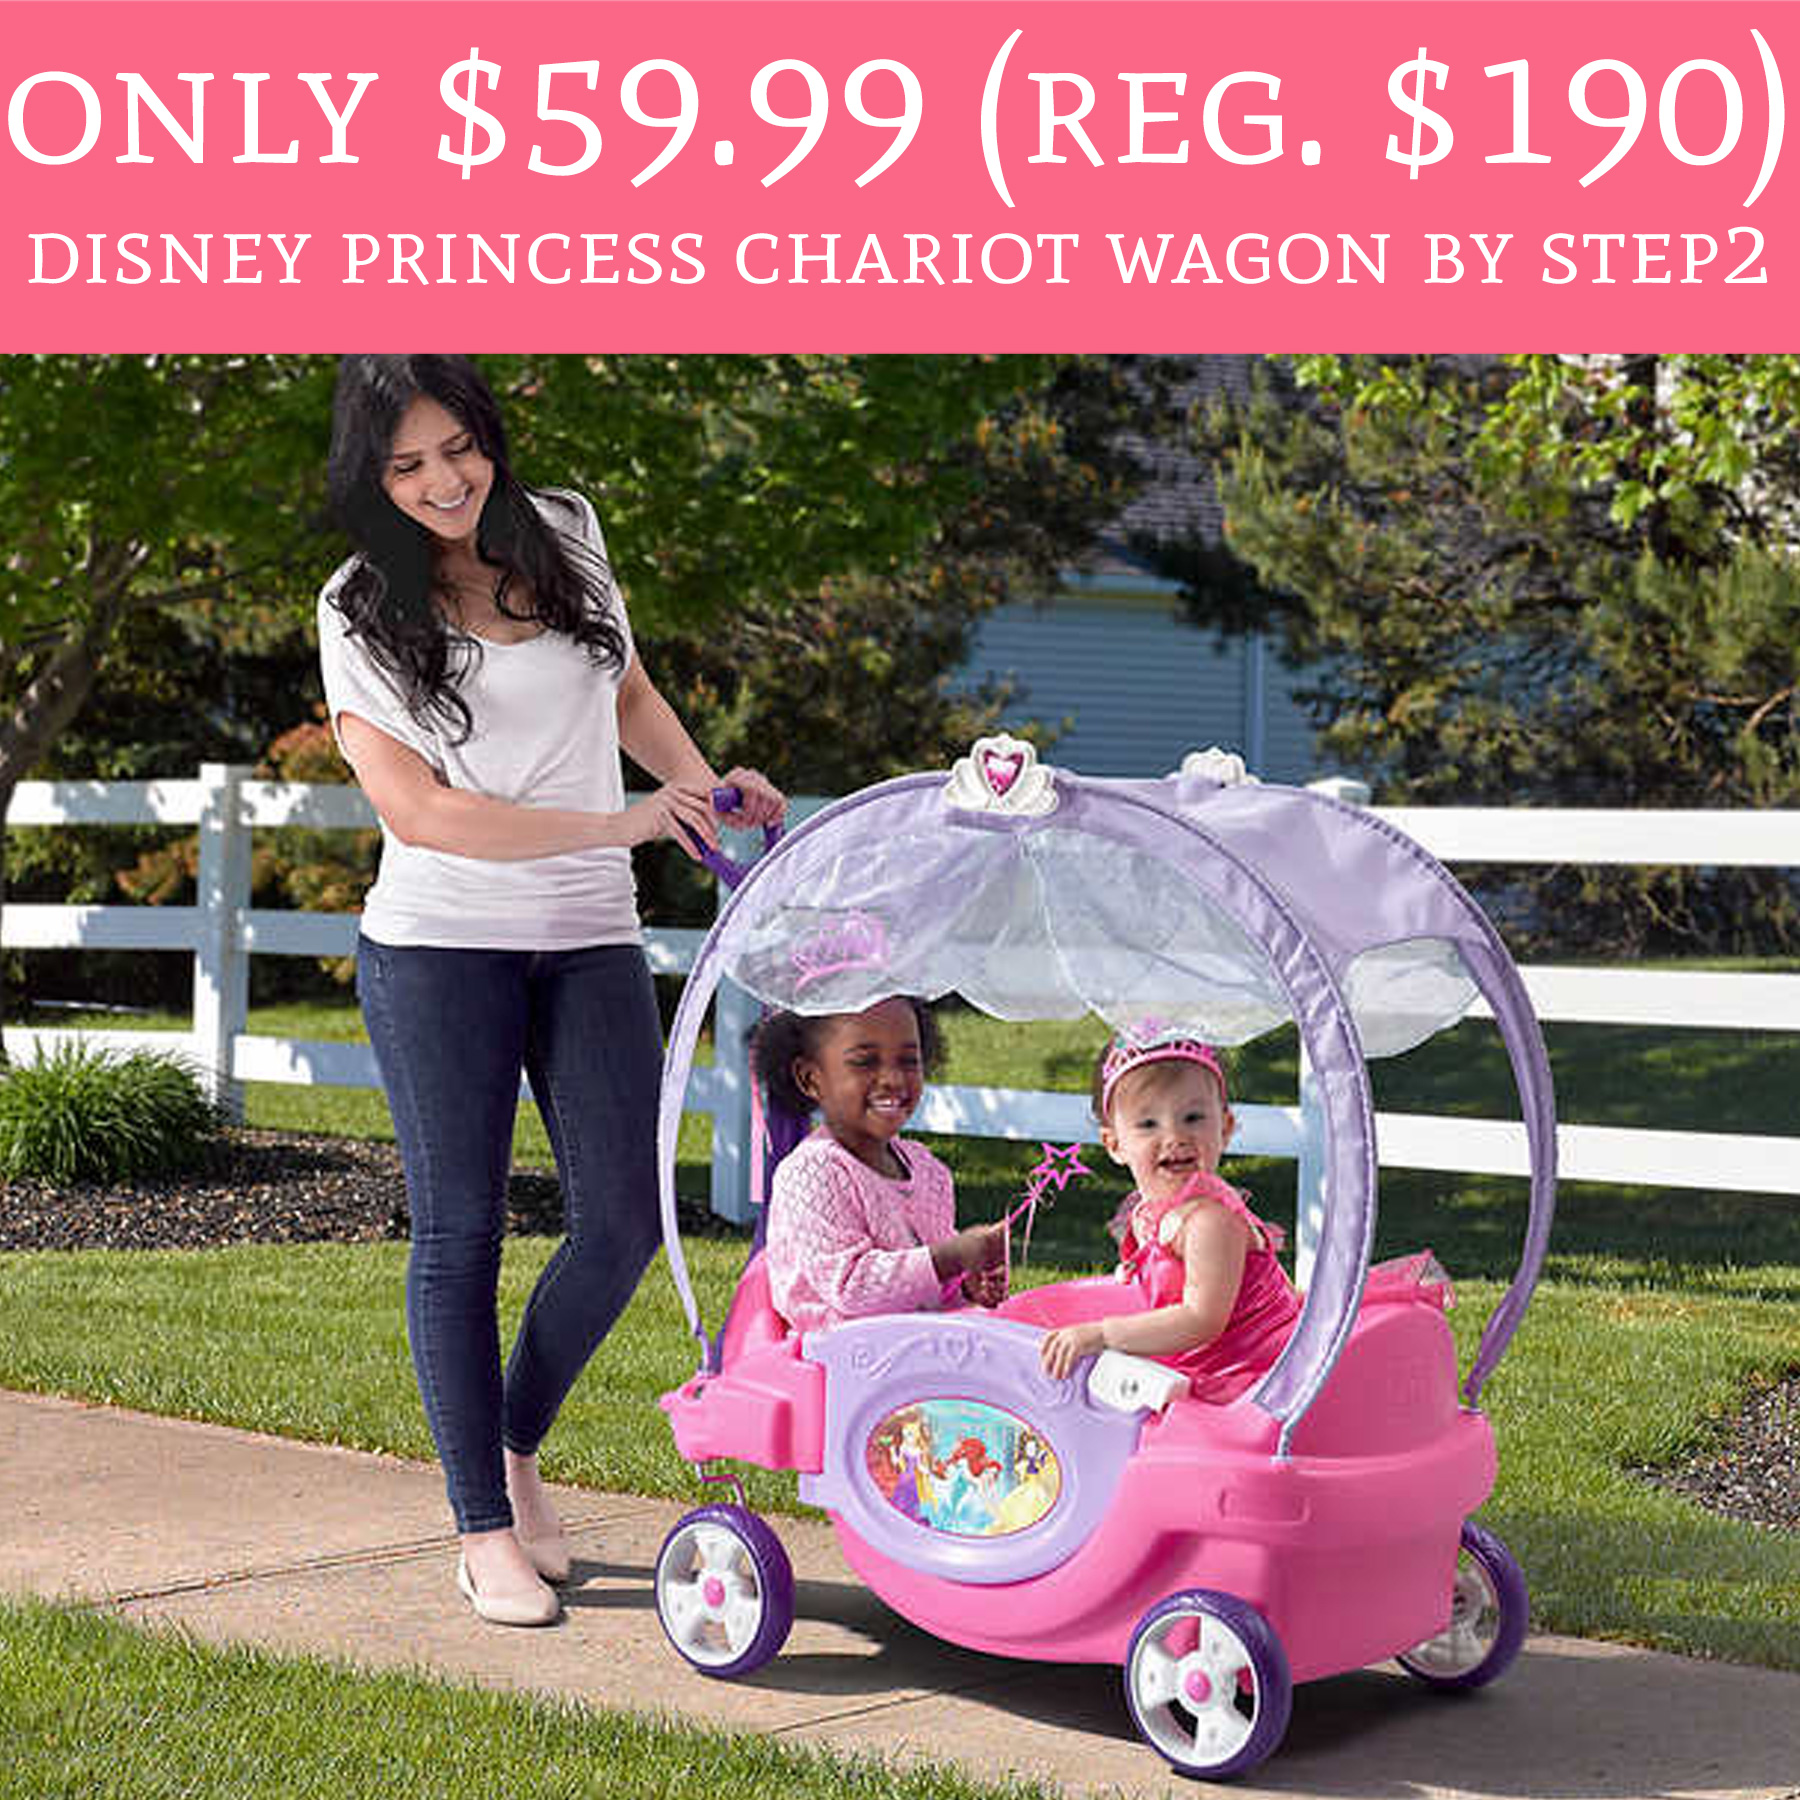 only  59 99  regular  190  disney princess chariot wagon